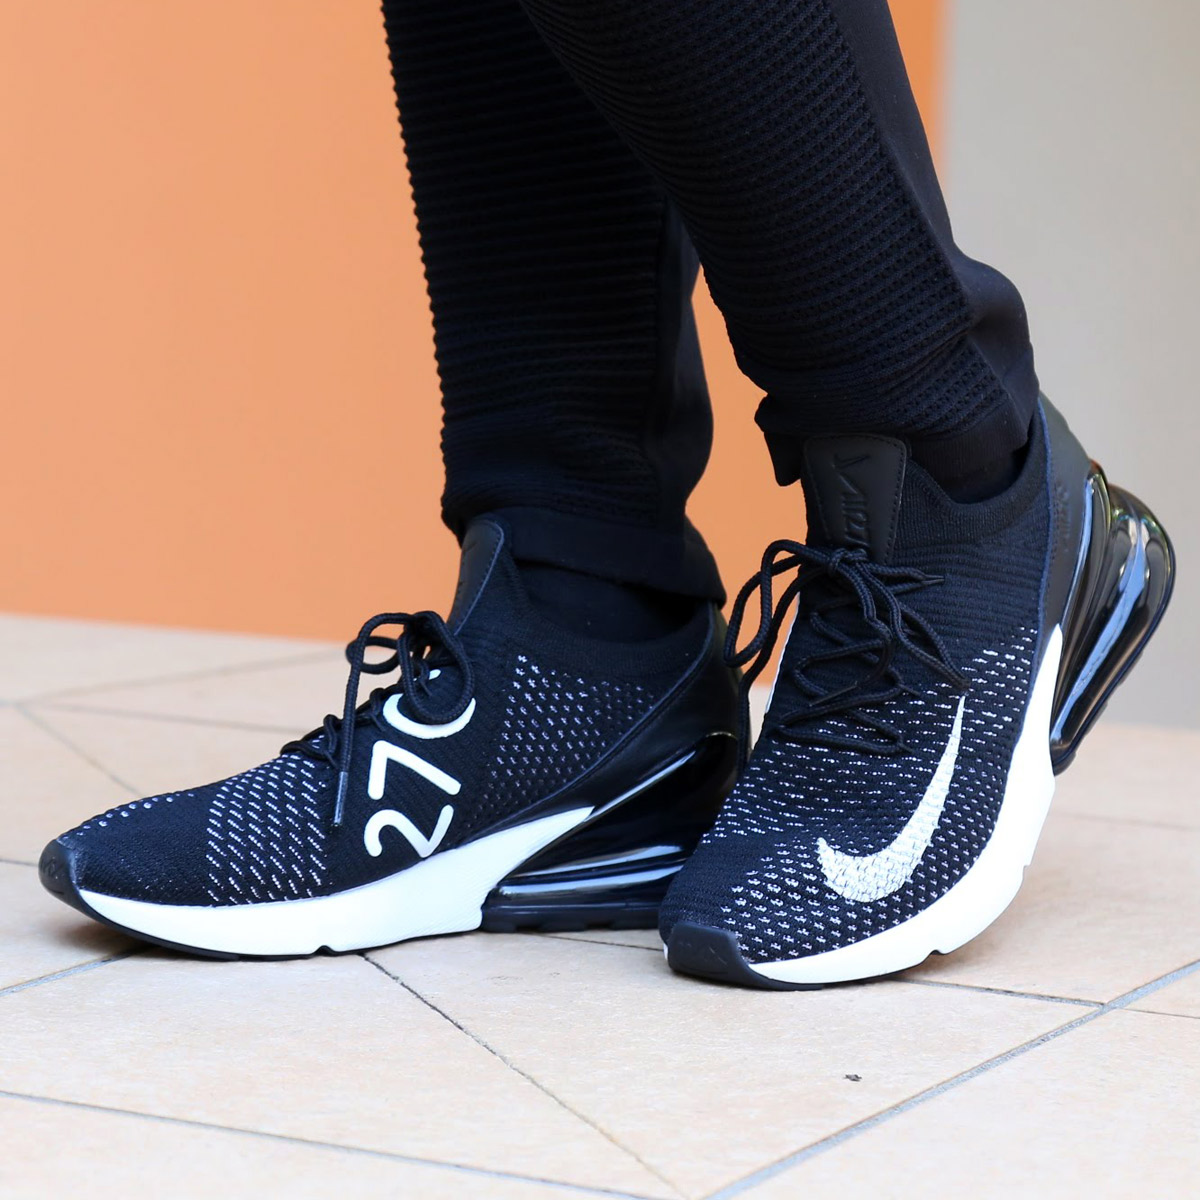 the latest 6f068 ff7c1 NIKE W AIR MAX 270 FLYKNIT (Nike women Air Max 270 fried food knit)  (BLACKWHITE-WHITE) 18SU-S